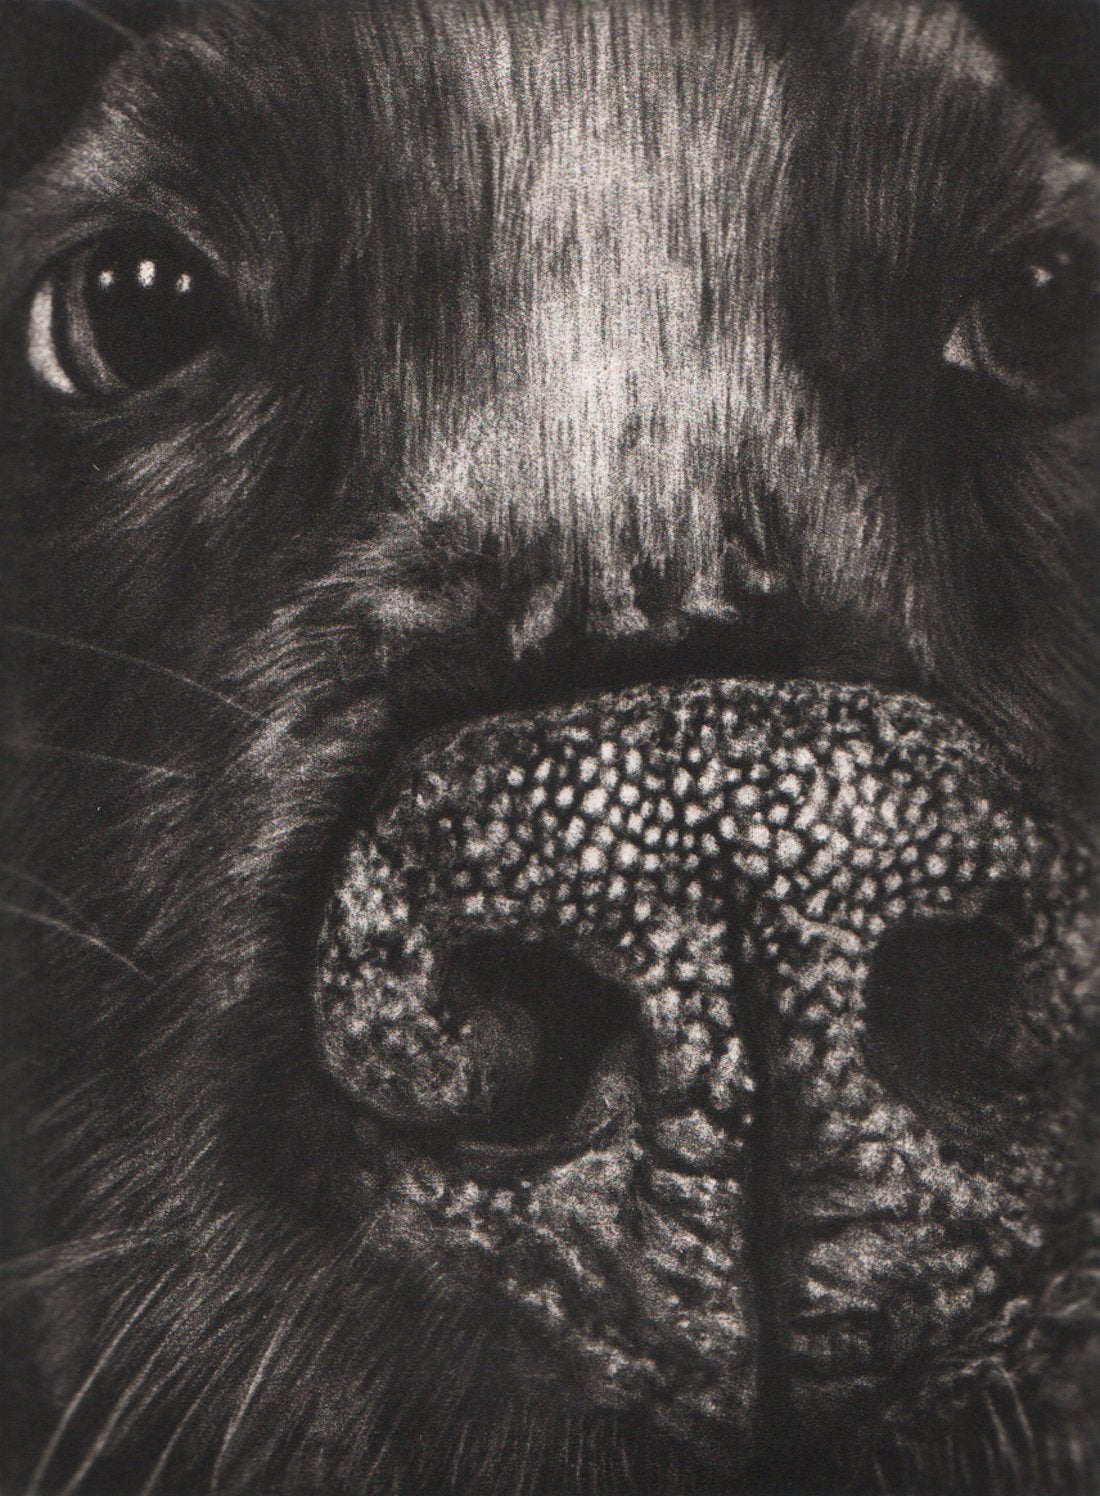 Kirstin Flaherty's 'Pit Bull Portrait.' Black and white mezzotint of a dog's nose and face.